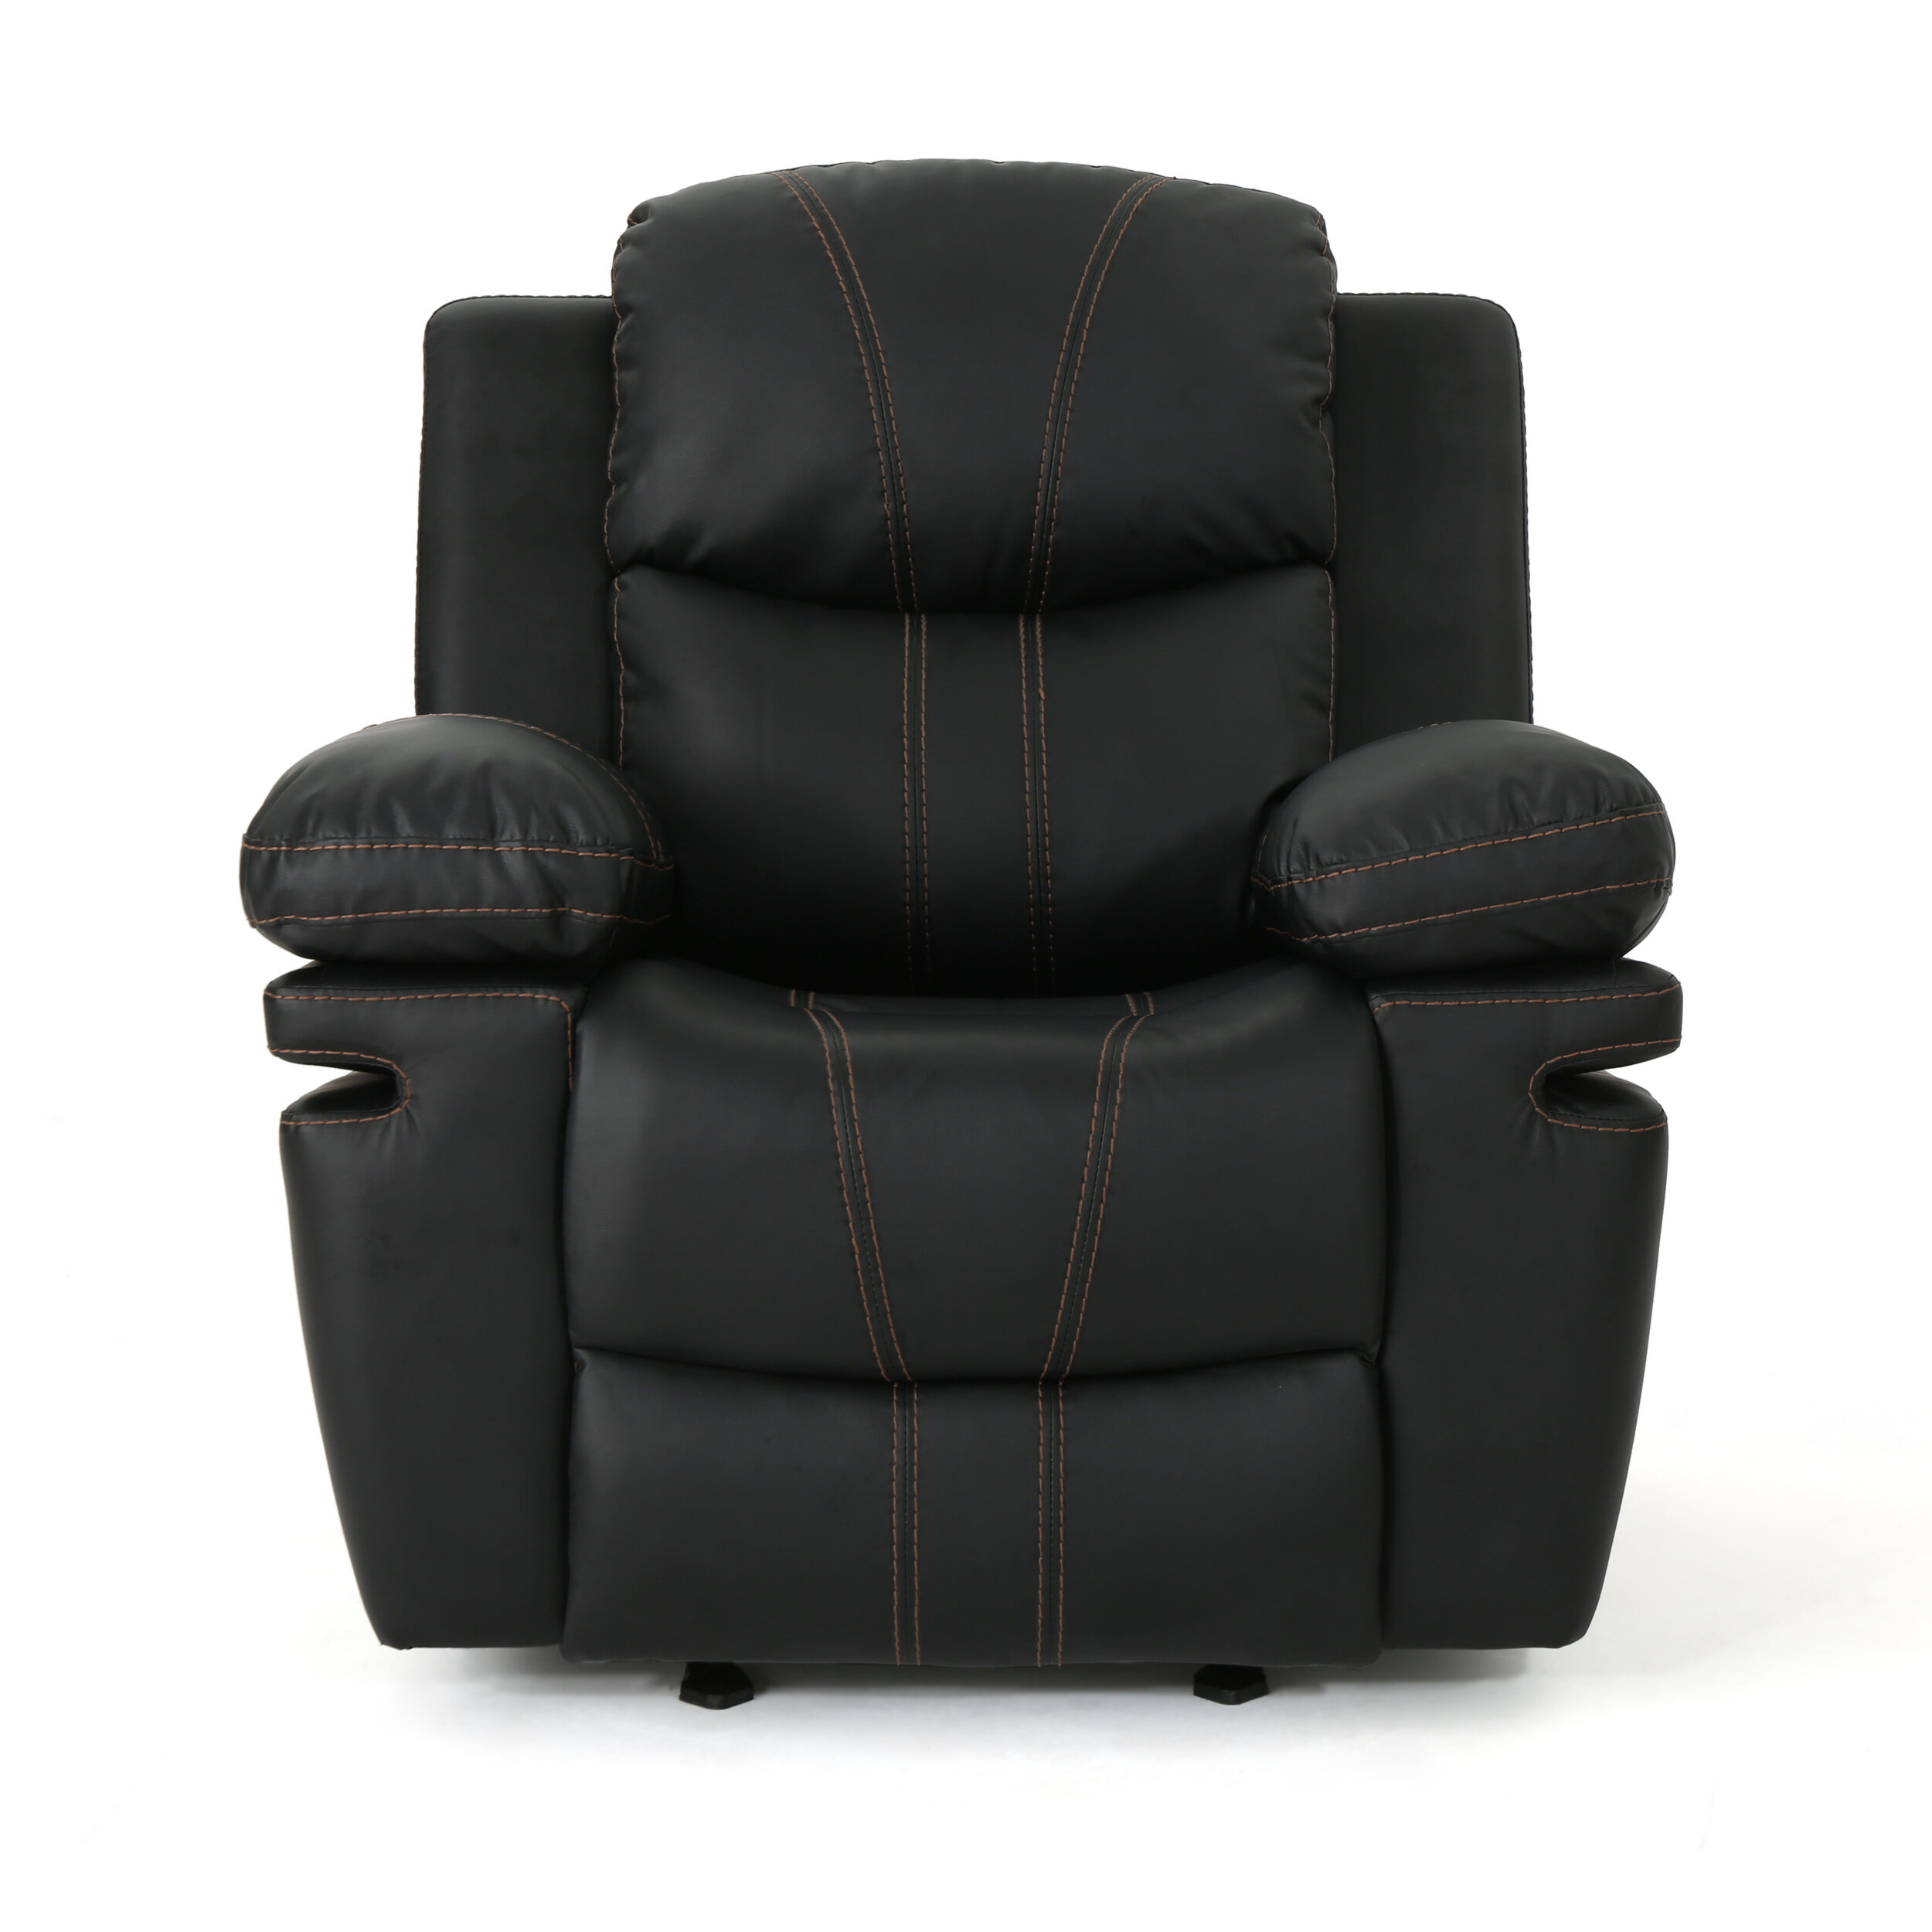 Latitude Run Ea Manual Glider Recliner & Reviews | Wayfair on office reception, office pens, office couch, office employees, office computers, office trash can, office footrest, office tables, office beds, office sofa sets, office cubicles, office lamps, office accessories, office furniture, office bookcases, office desks, office stools, office lobby, office kitchen, office counters,